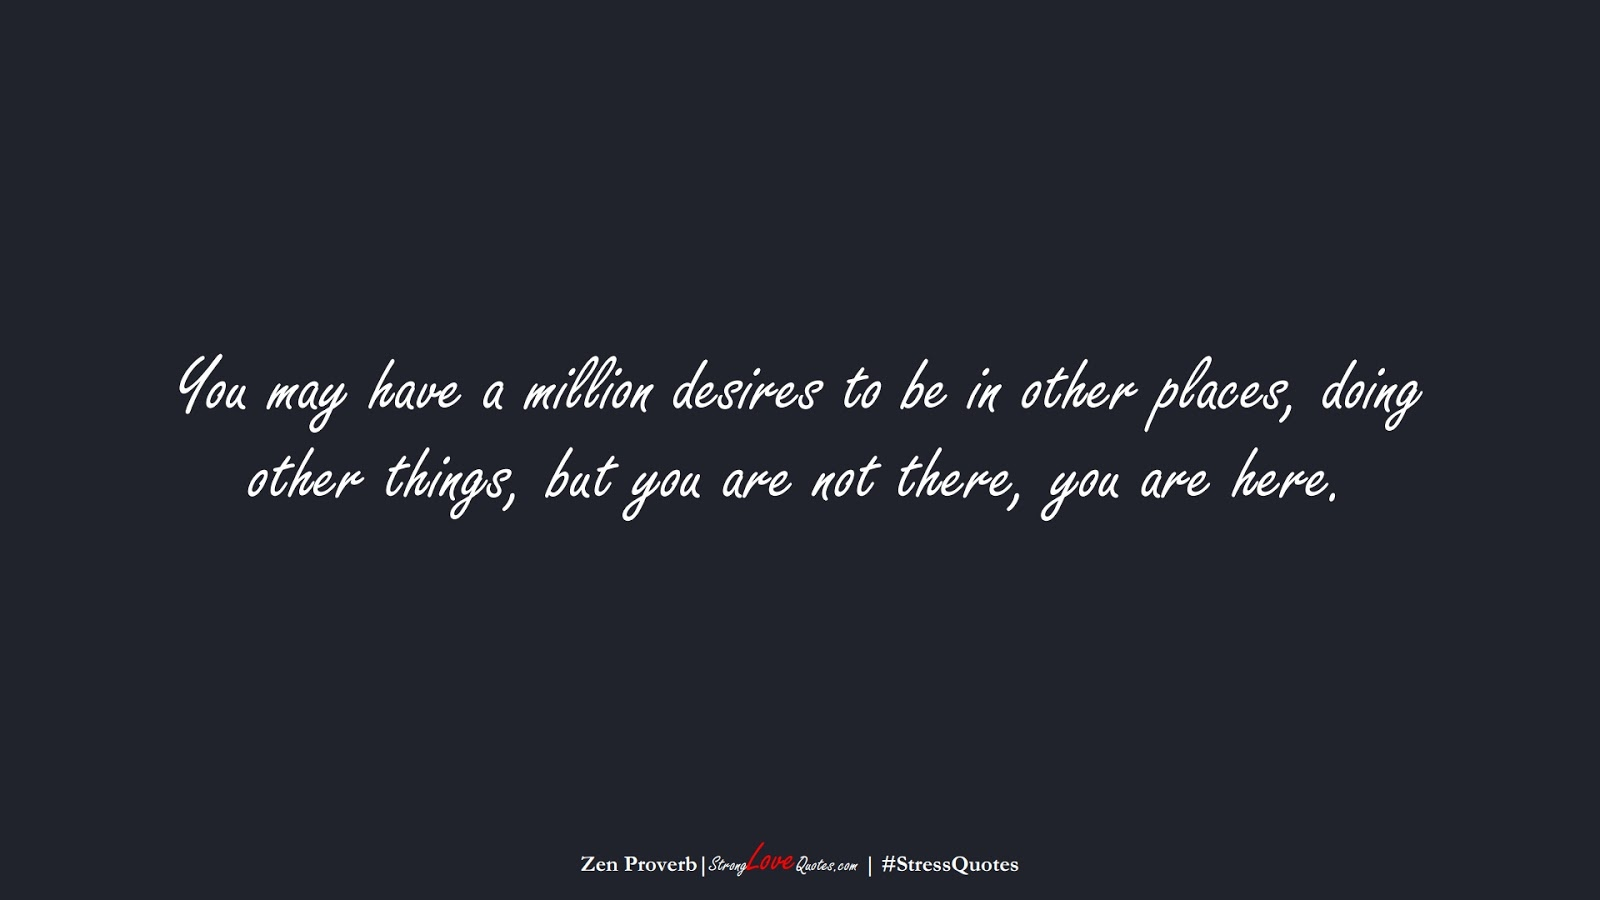 You may have a million desires to be in other places, doing other things, but you are not there, you are here. (Zen Proverb);  #StressQuotes